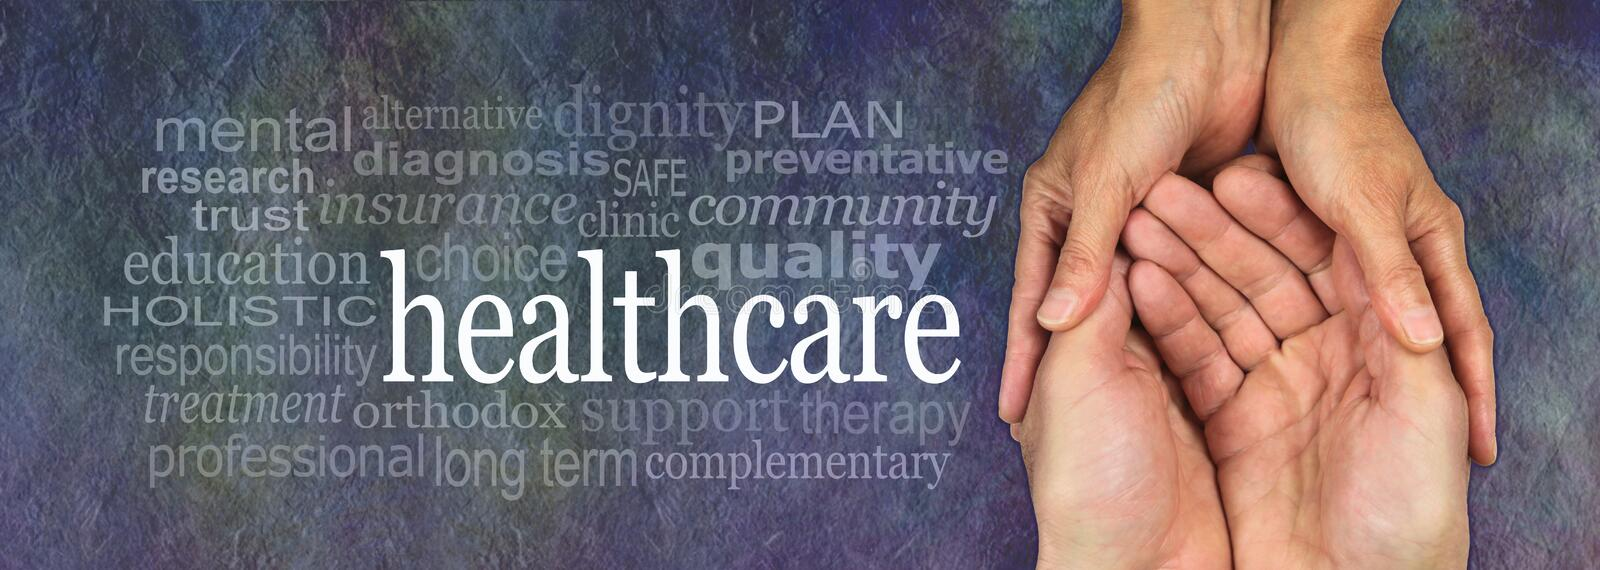 Health Care worker Campaign Banner royalty free stock photo